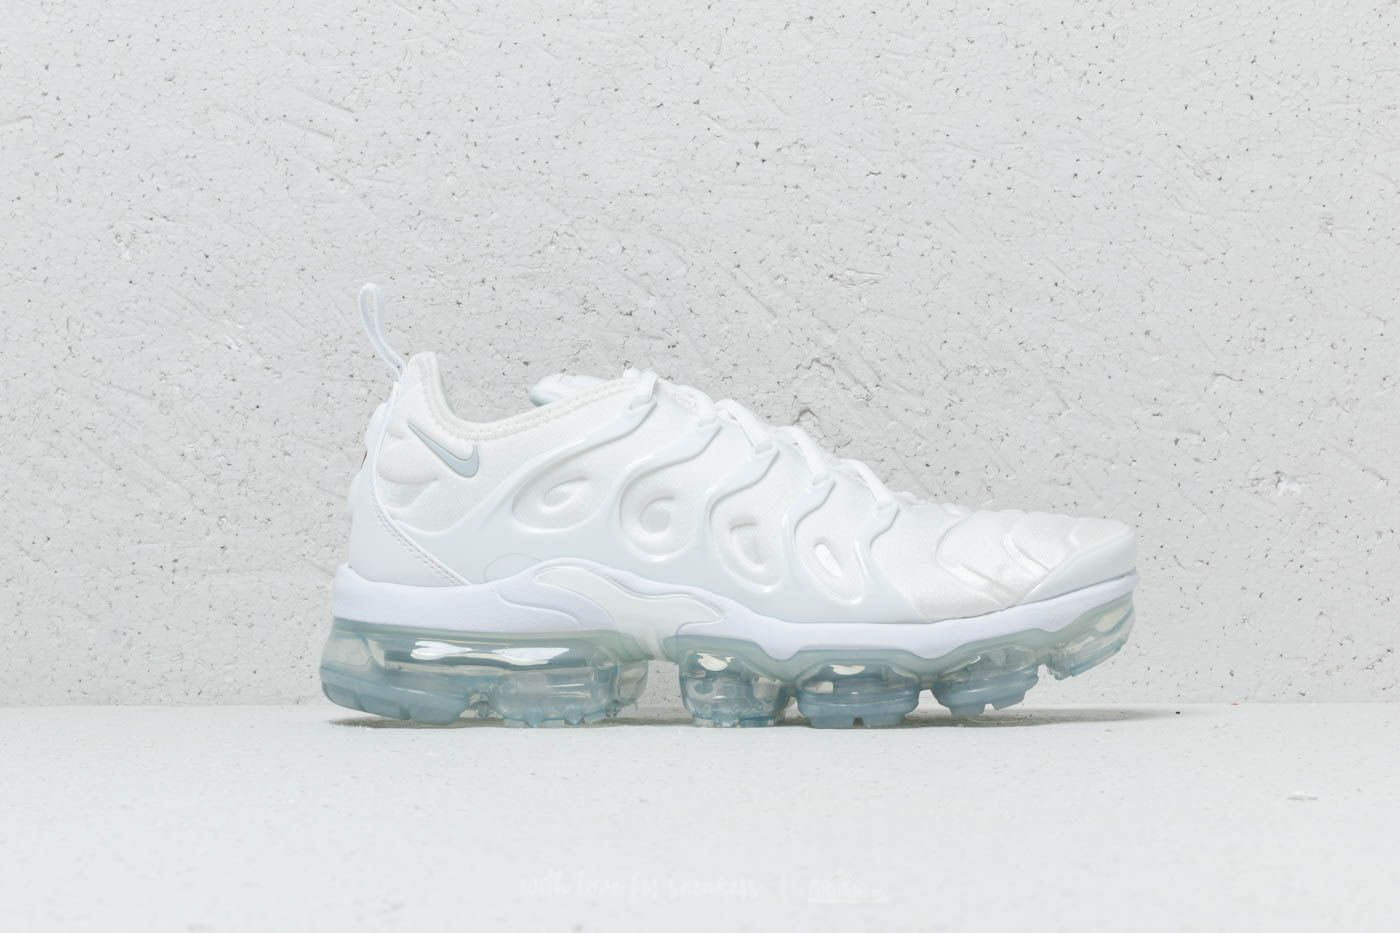 056de057669 Nike Air Vapormax Plus White  White-Pure Platinum at a great price 209 €